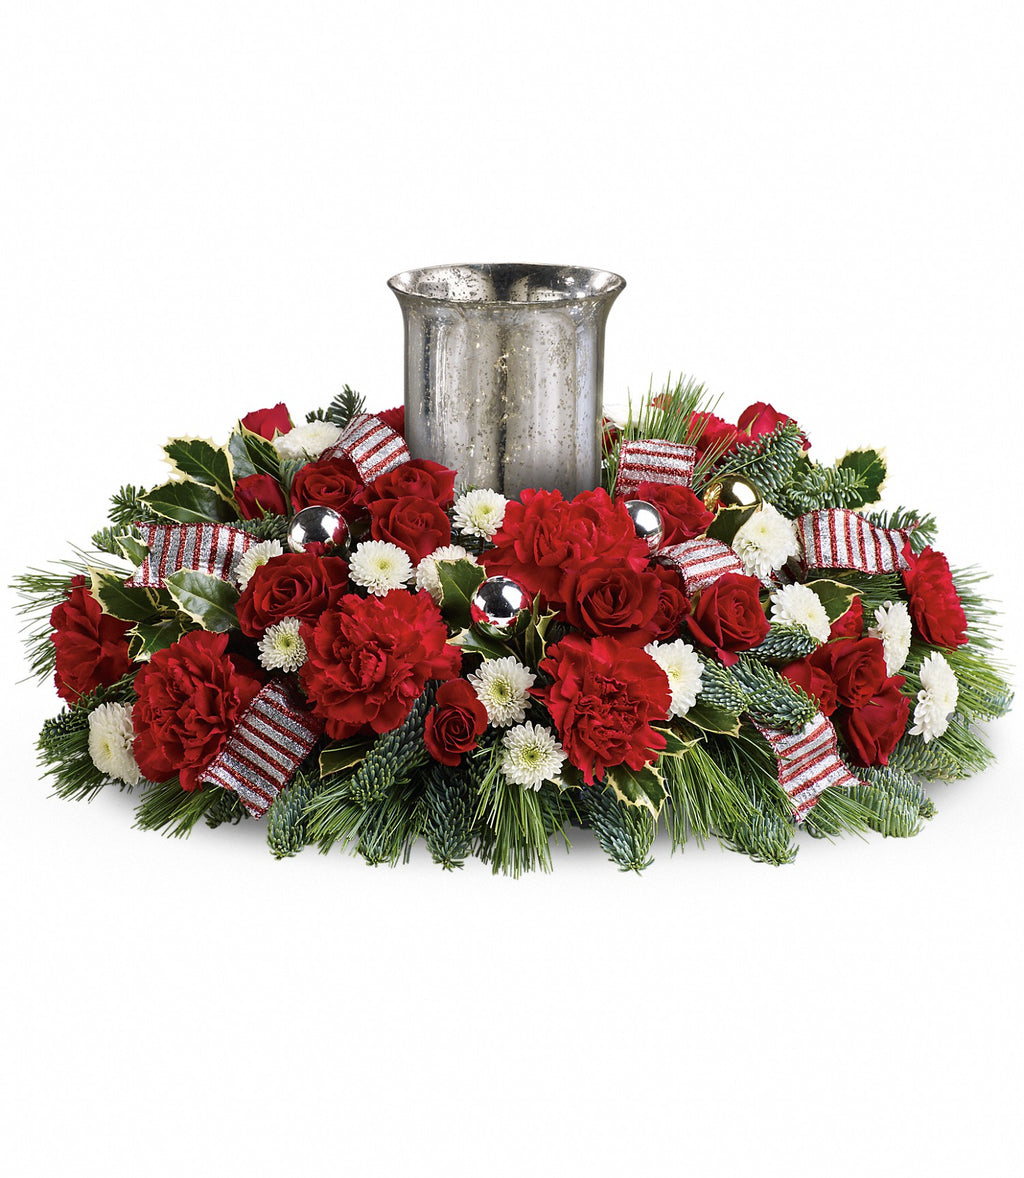 Holly Jolly Centerpiece